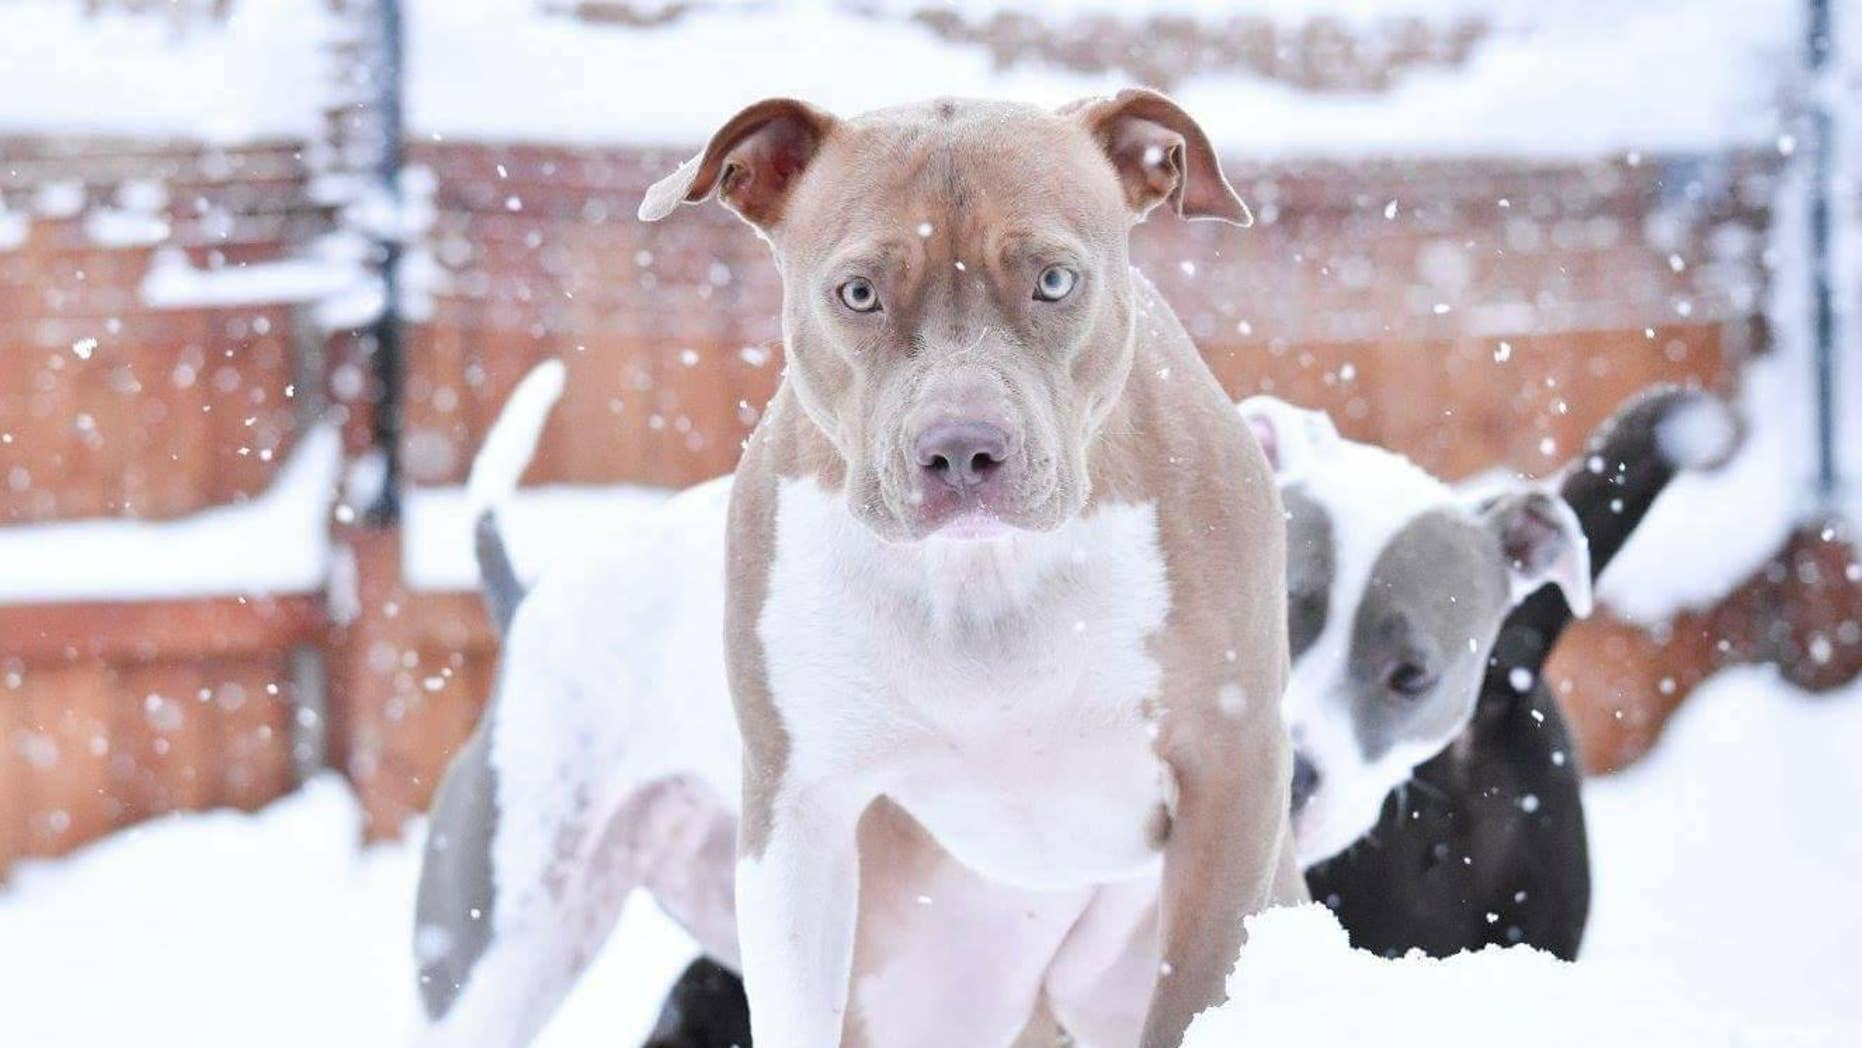 Ronene Ando, of Buffalo, New York, credits her pit bull Ruby with saving her life.